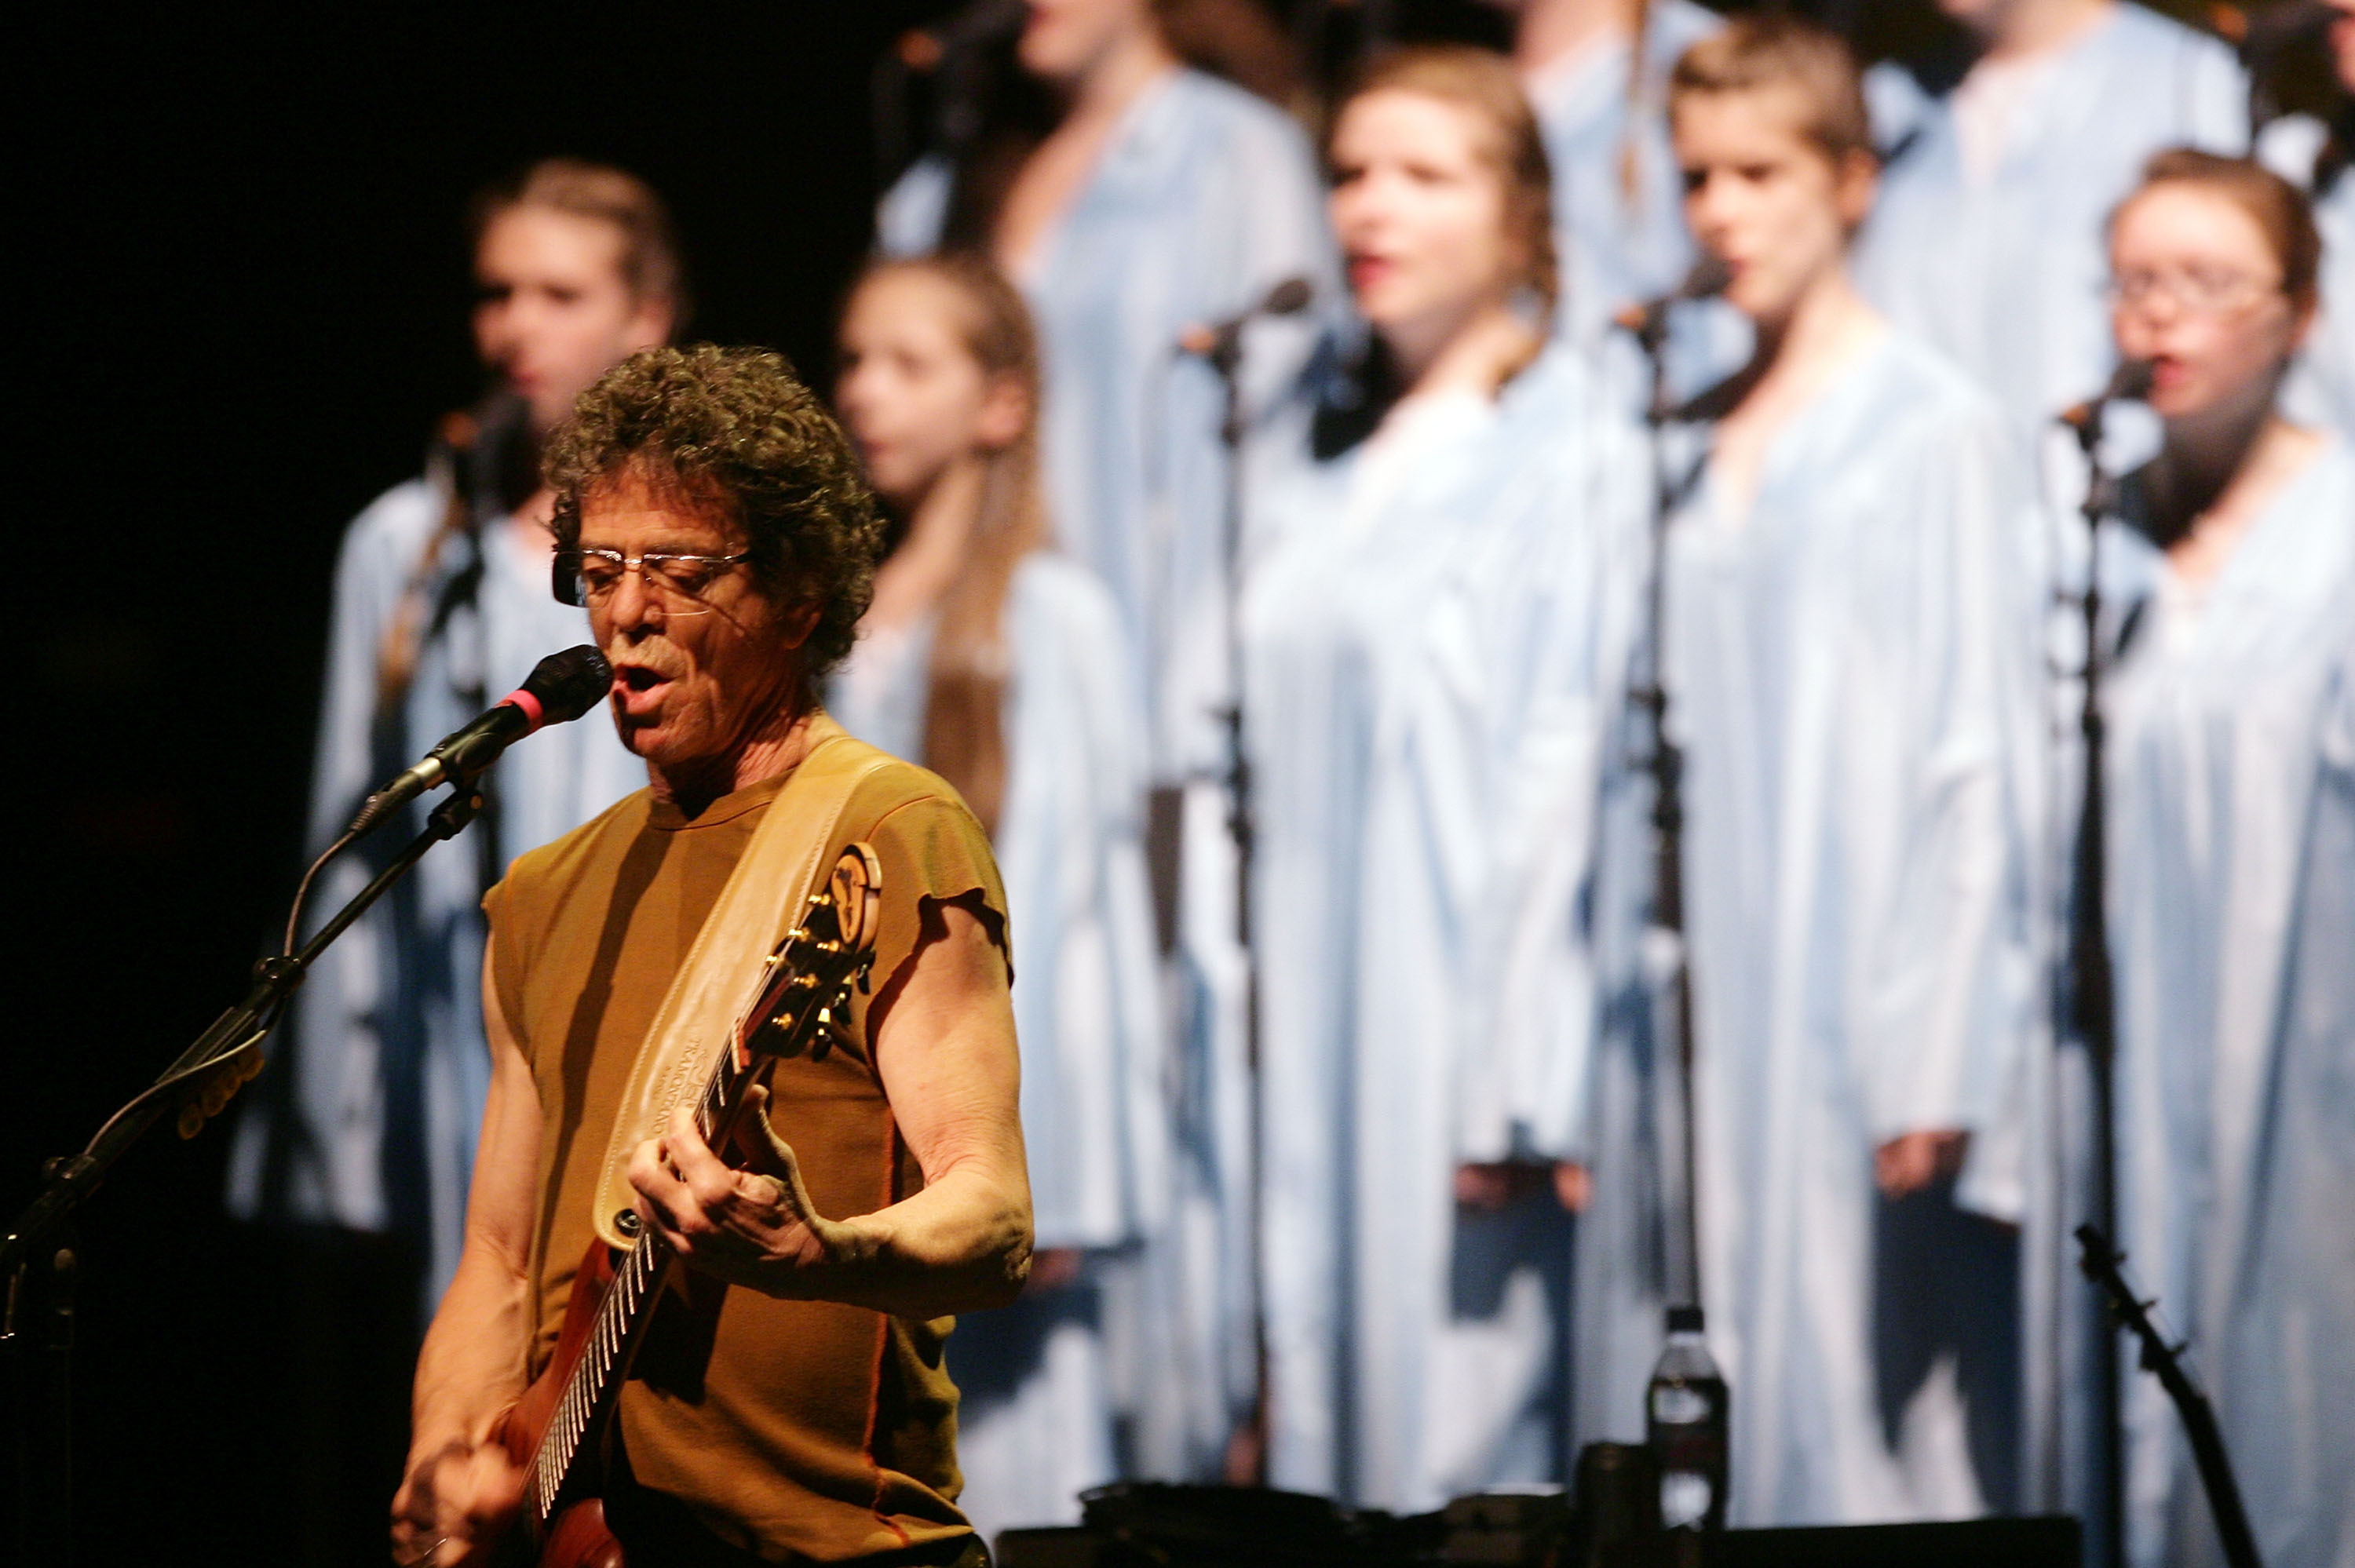 Reed performs his album Berlin at the CCH Congress Center in Hamburg in 2008.